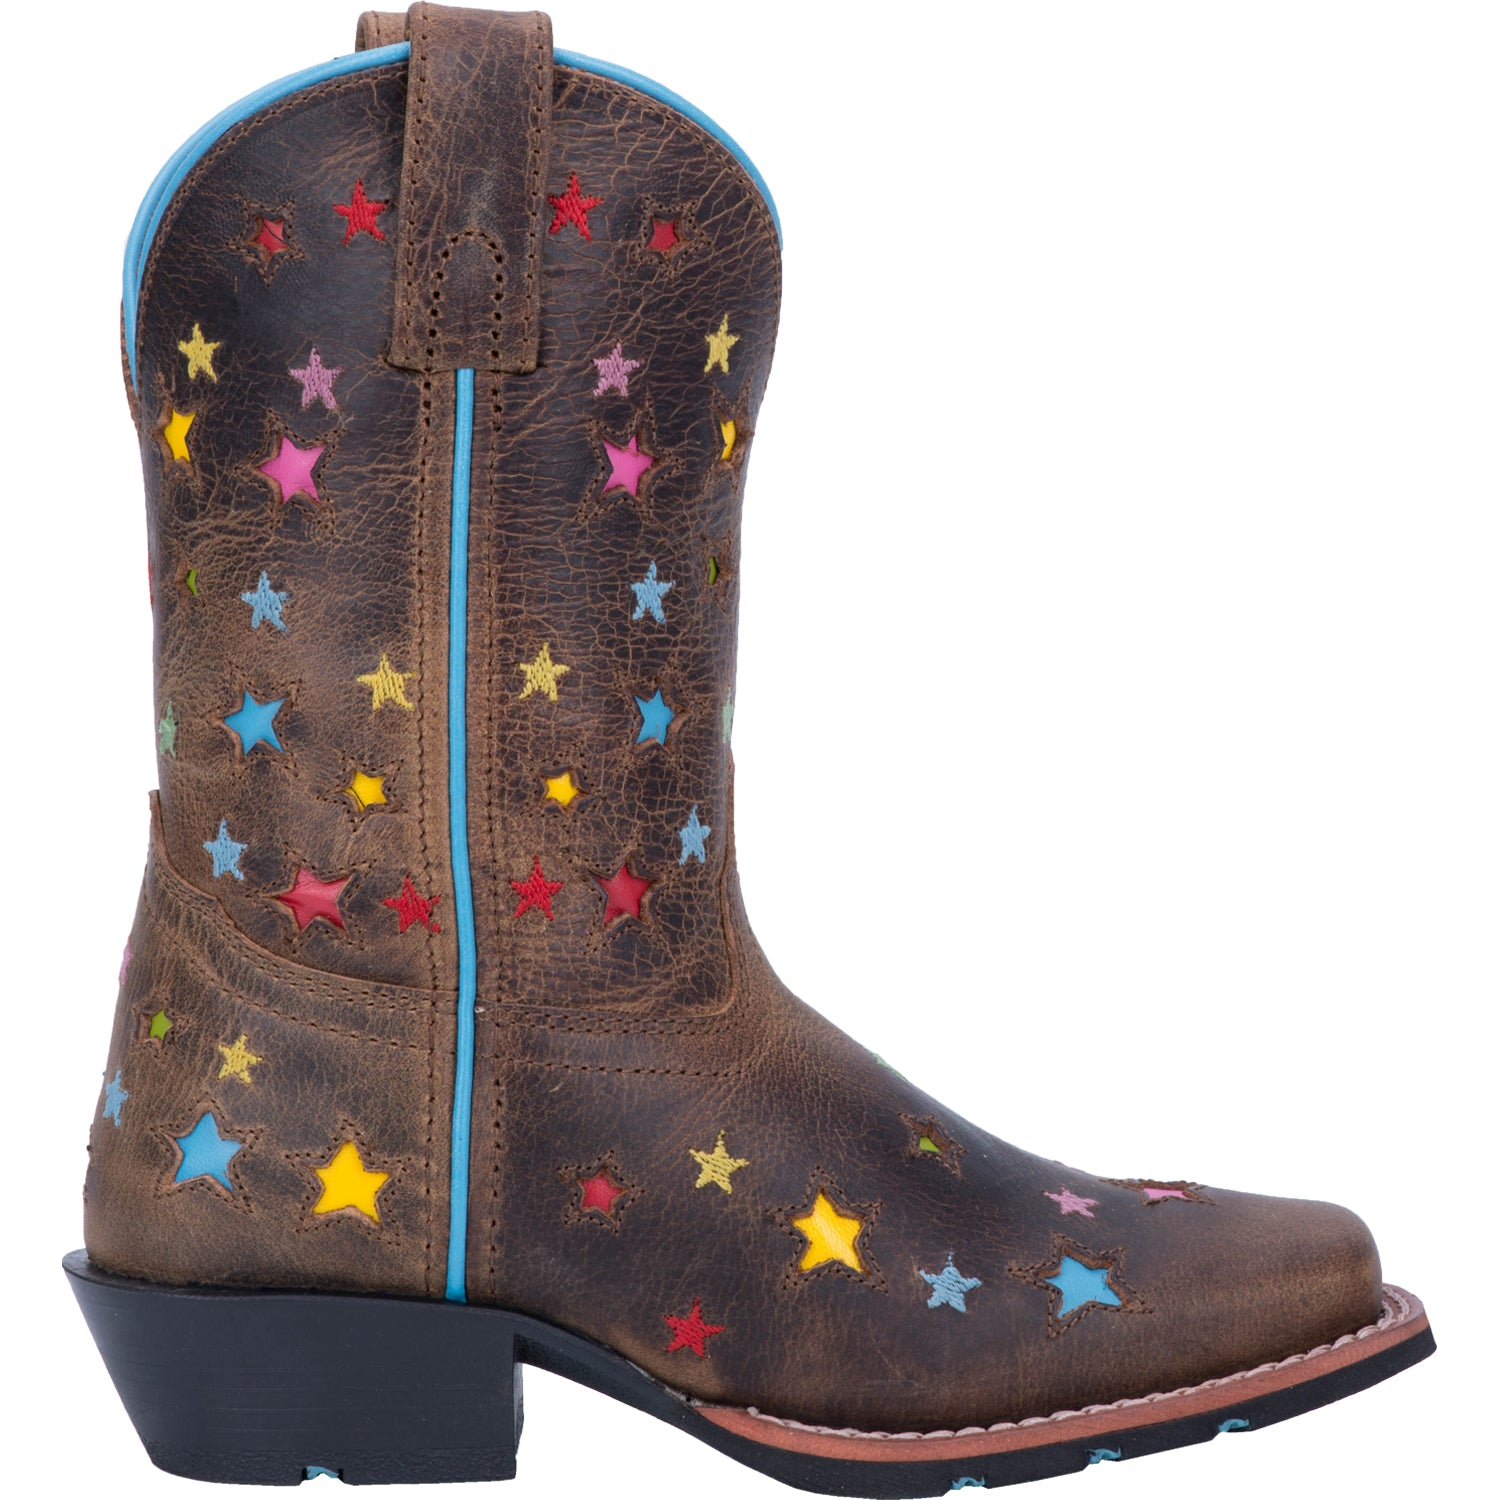 STARLETT LEATHER CHILDREN'S BOOT 15521811300394